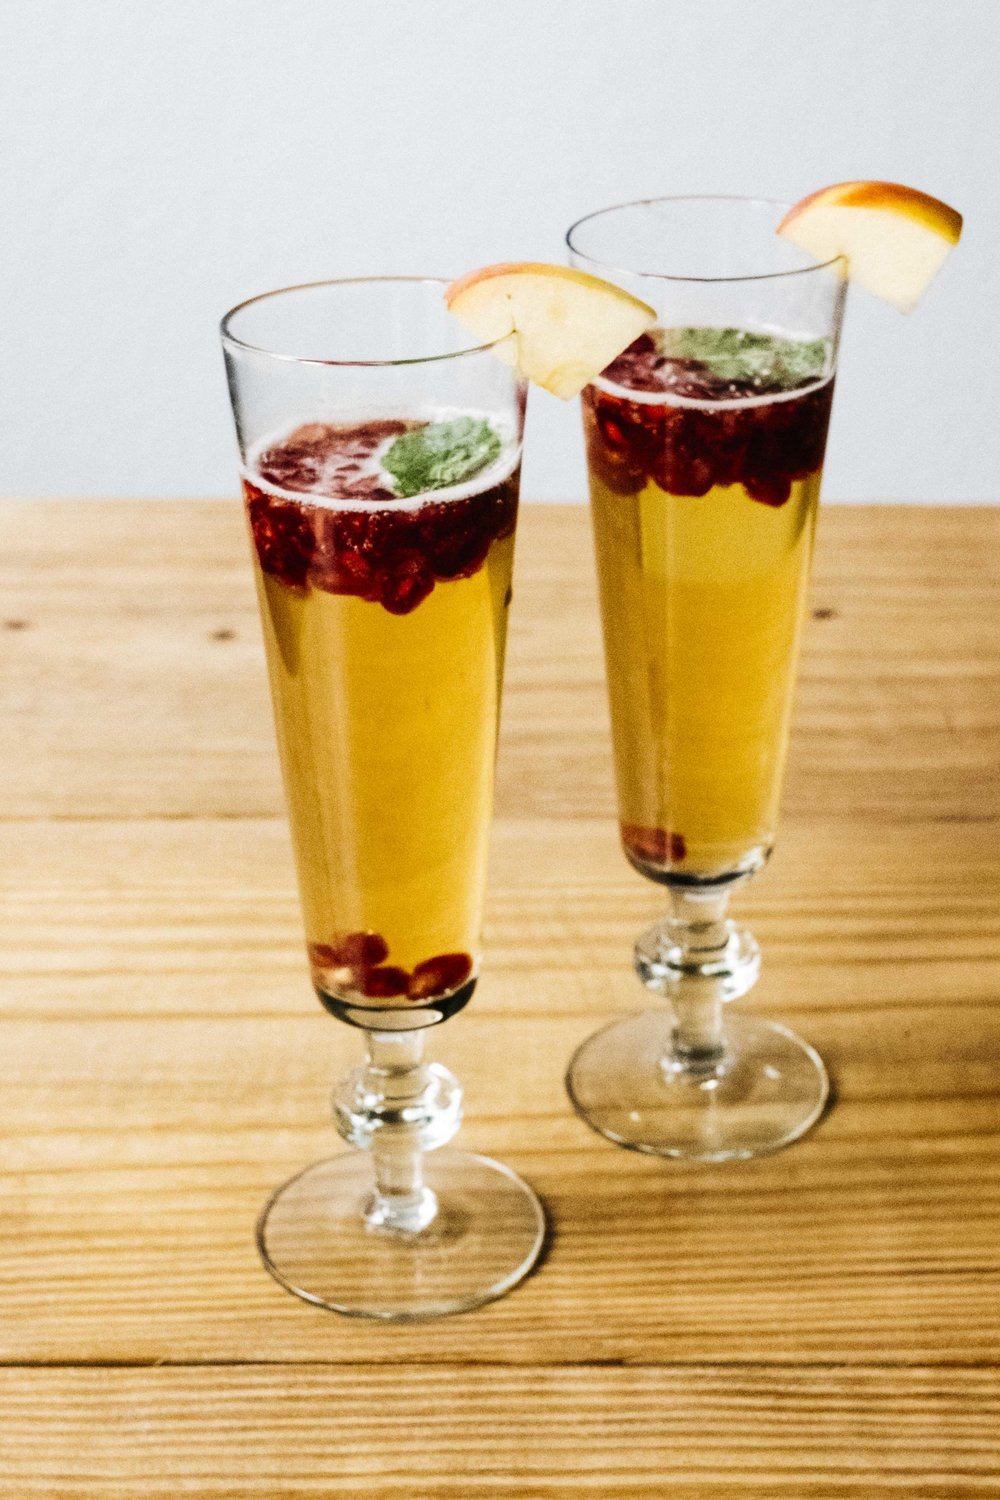 Sparkling Pomegranate Apple Cider Drink